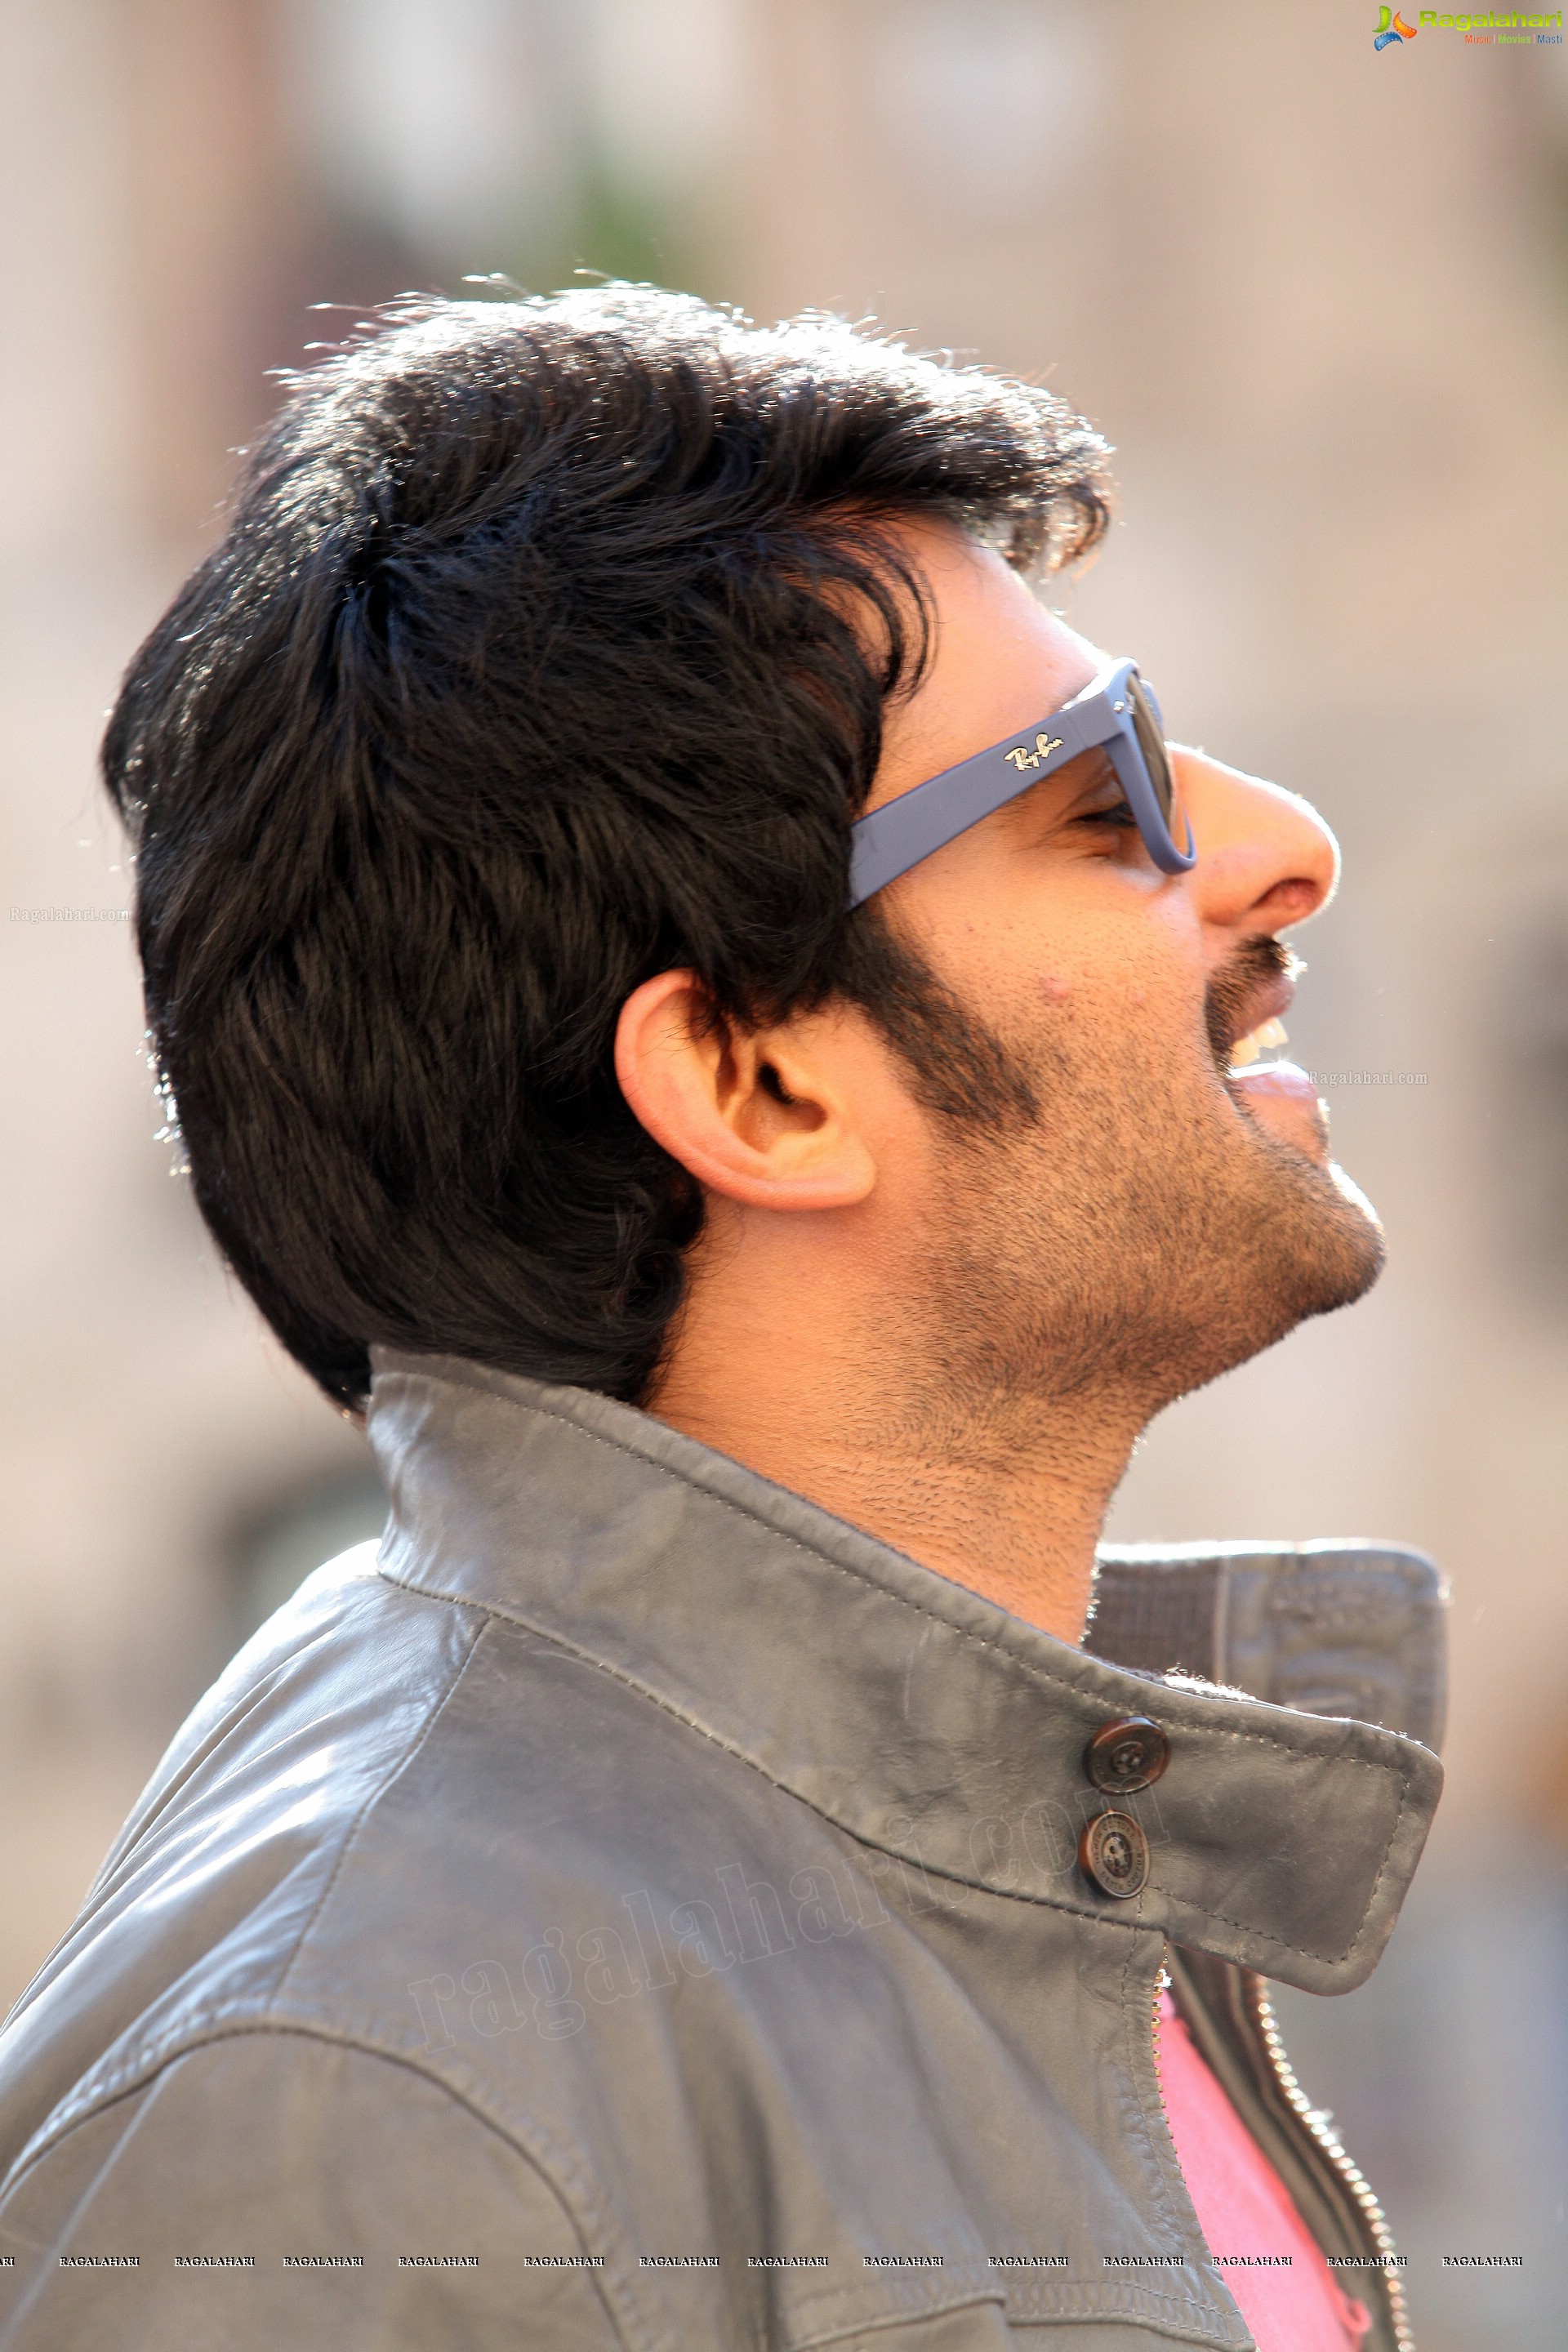 prabhas (hd) image 18 | telugu actor photos,images, photos, pictures